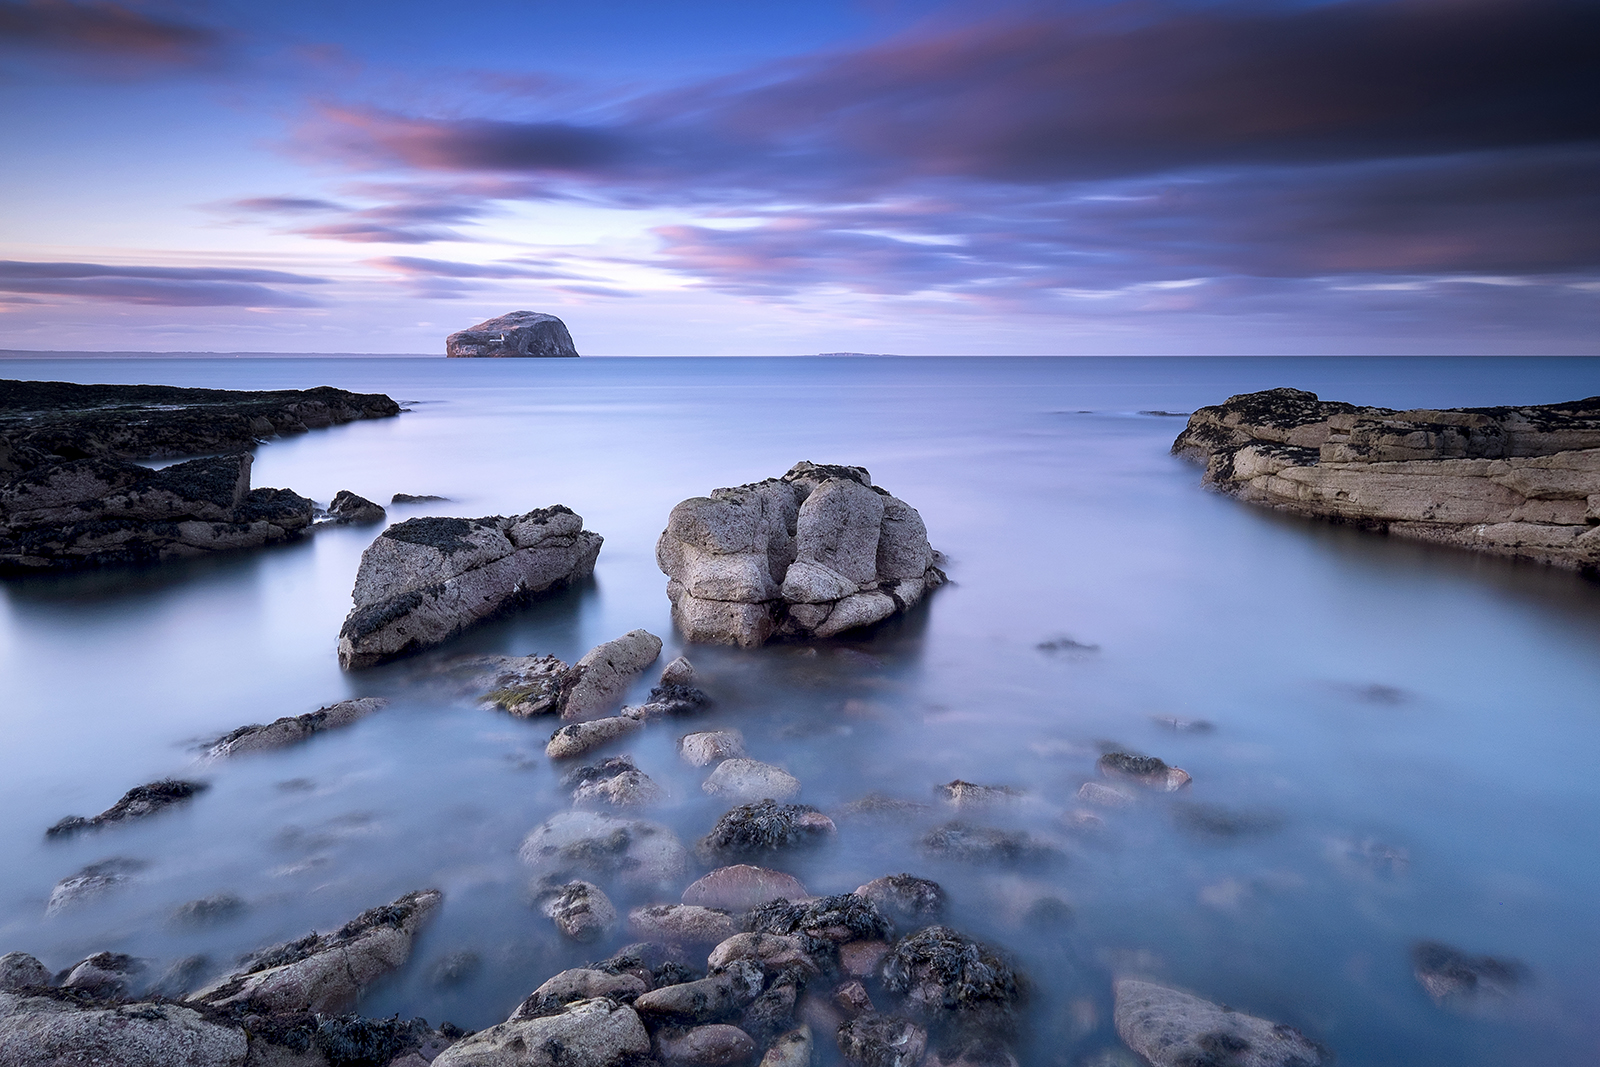 BASS ROCK -  CLICK HERE TO SELECT AND PURCHASE THIS IMAGE